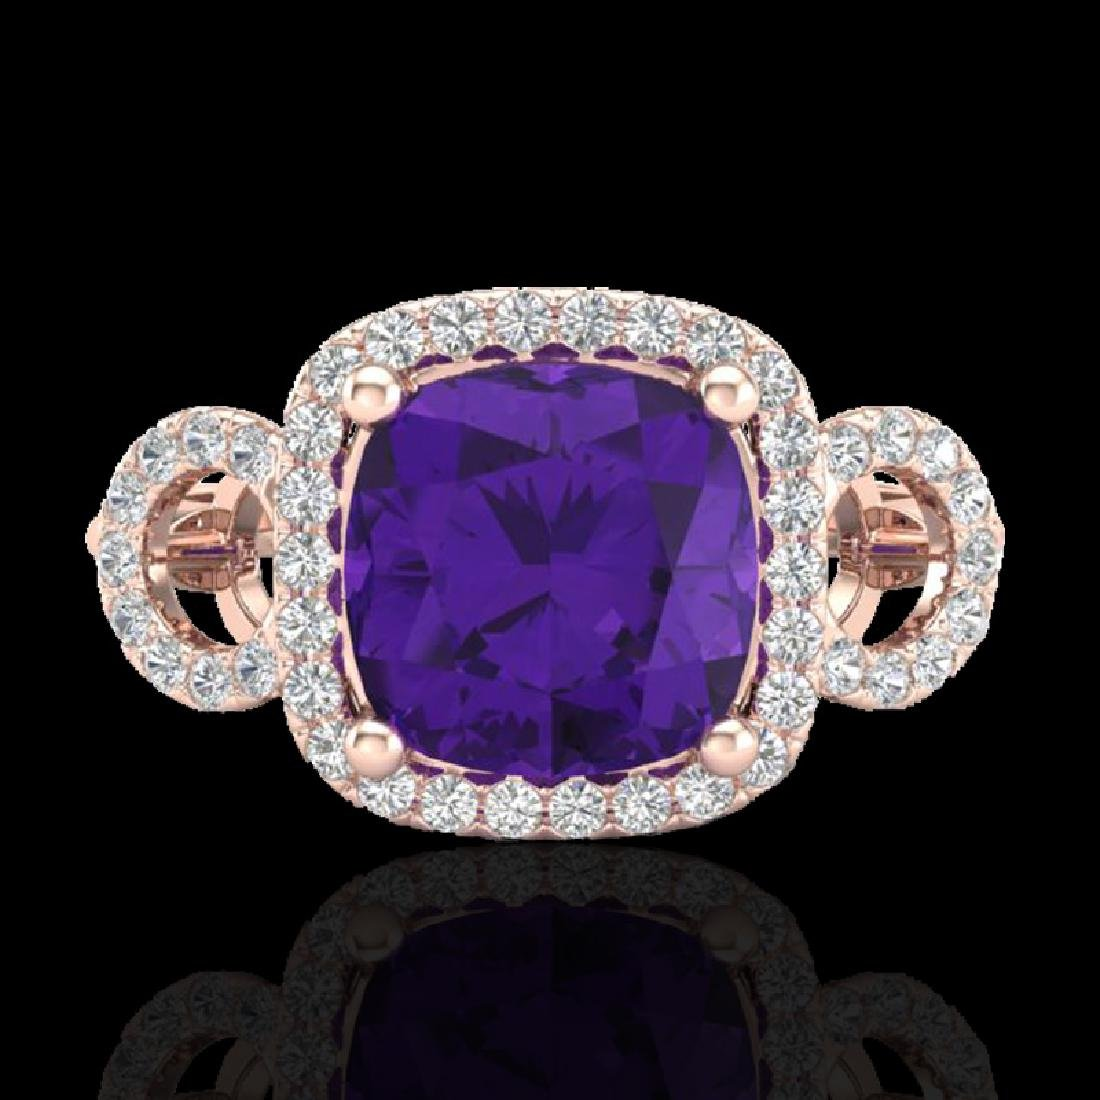 3.75 CTW Amethyst & Micro VS/SI Diamond Ring 14K Rose